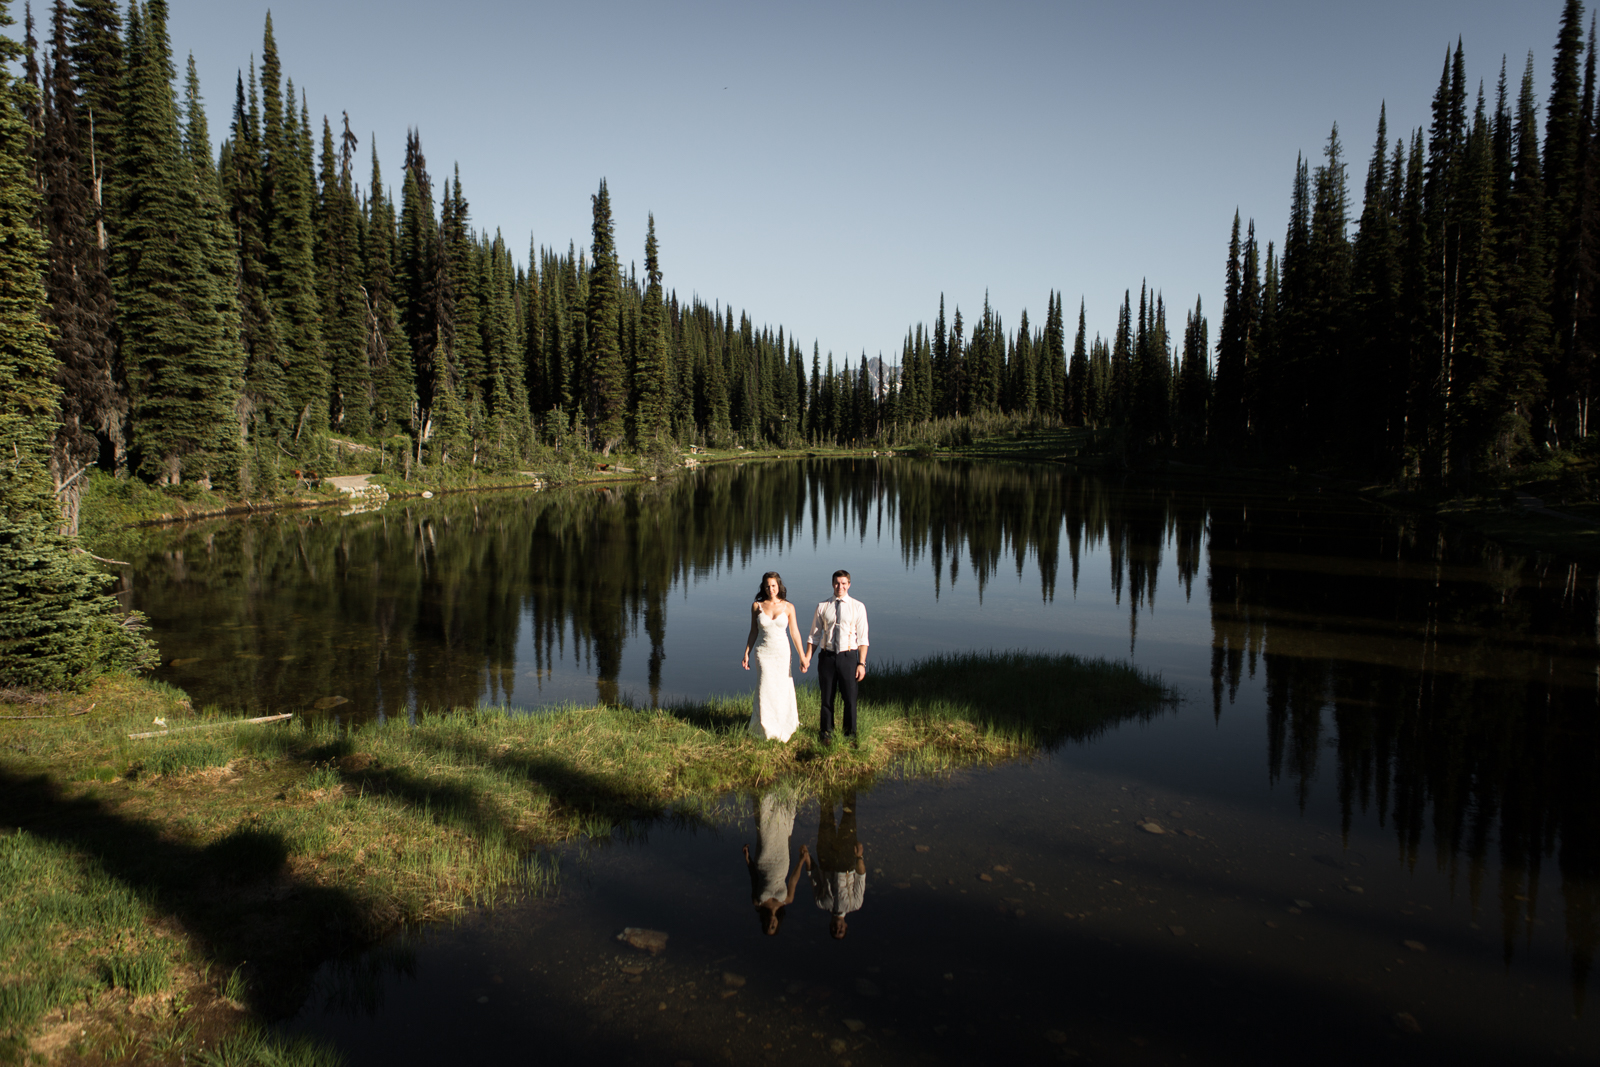 63Andrew_Pavlidis_Photography_Jess_and_Tristan_Revelstoke_Elopement_Calgary_Wedding_Photographer-9213